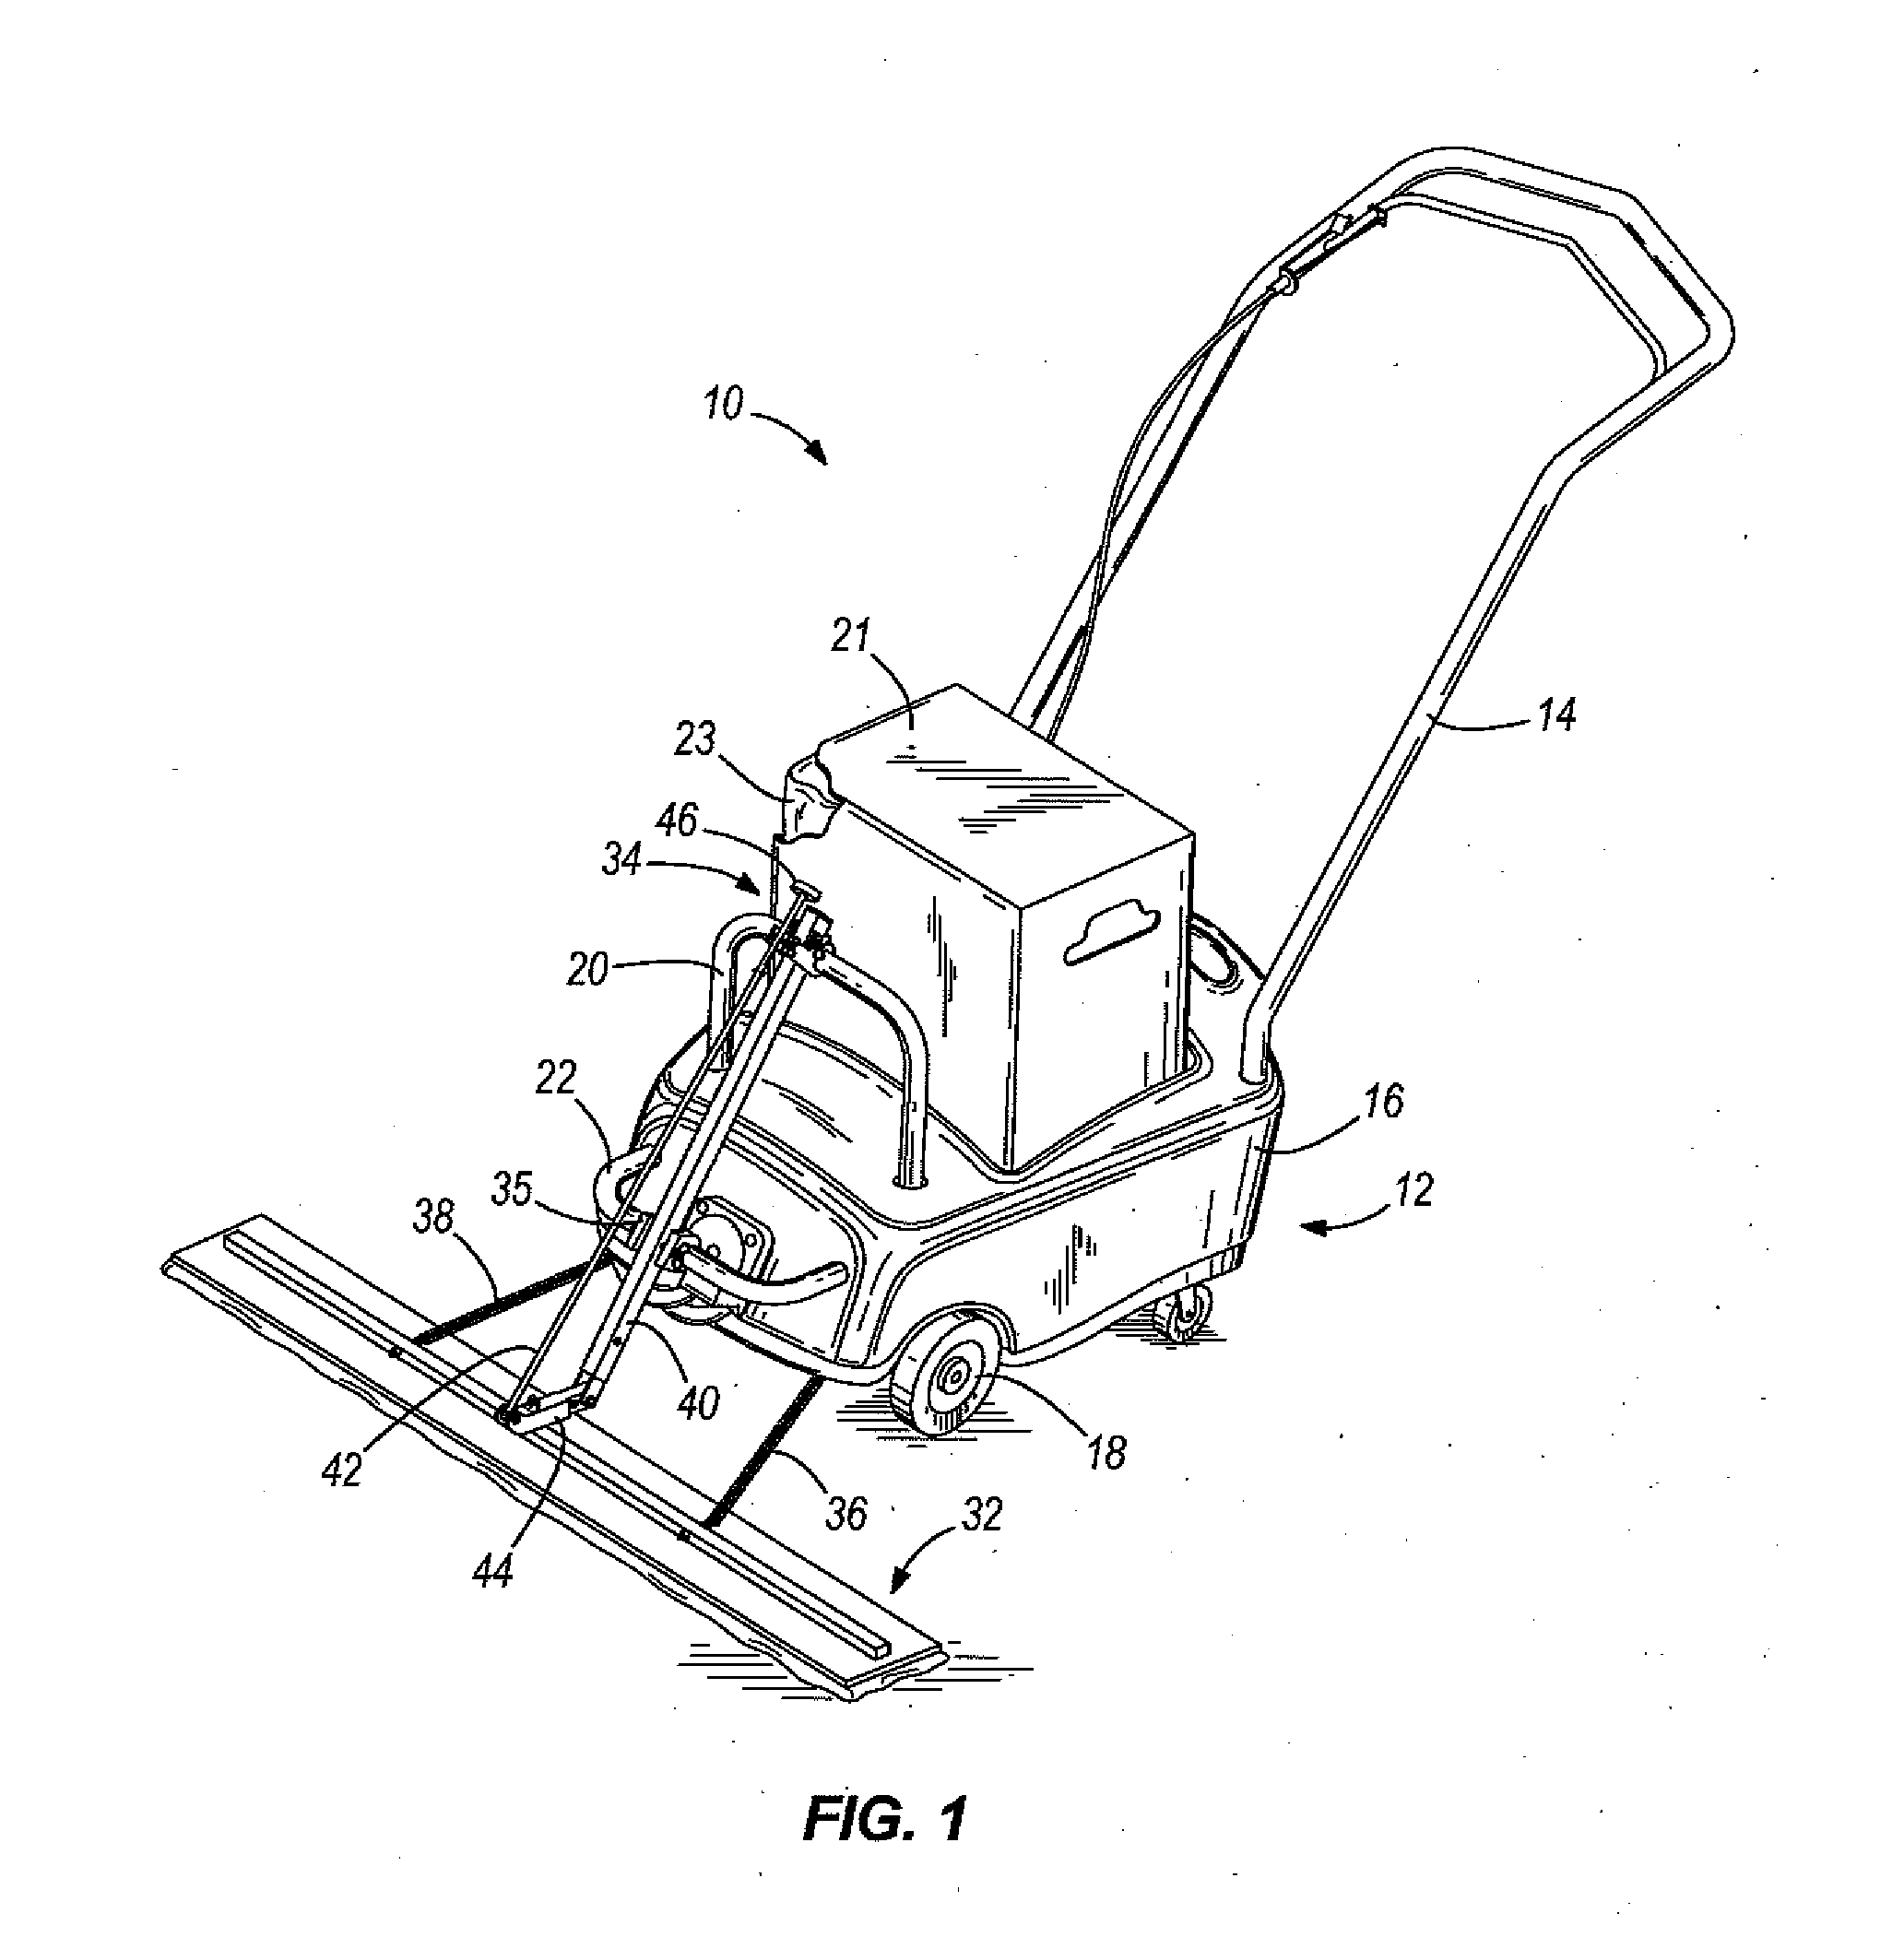 ... Diversey Floor Finish Applicator By Patent Us20110244137 Floor Finish  Applicator Google ...